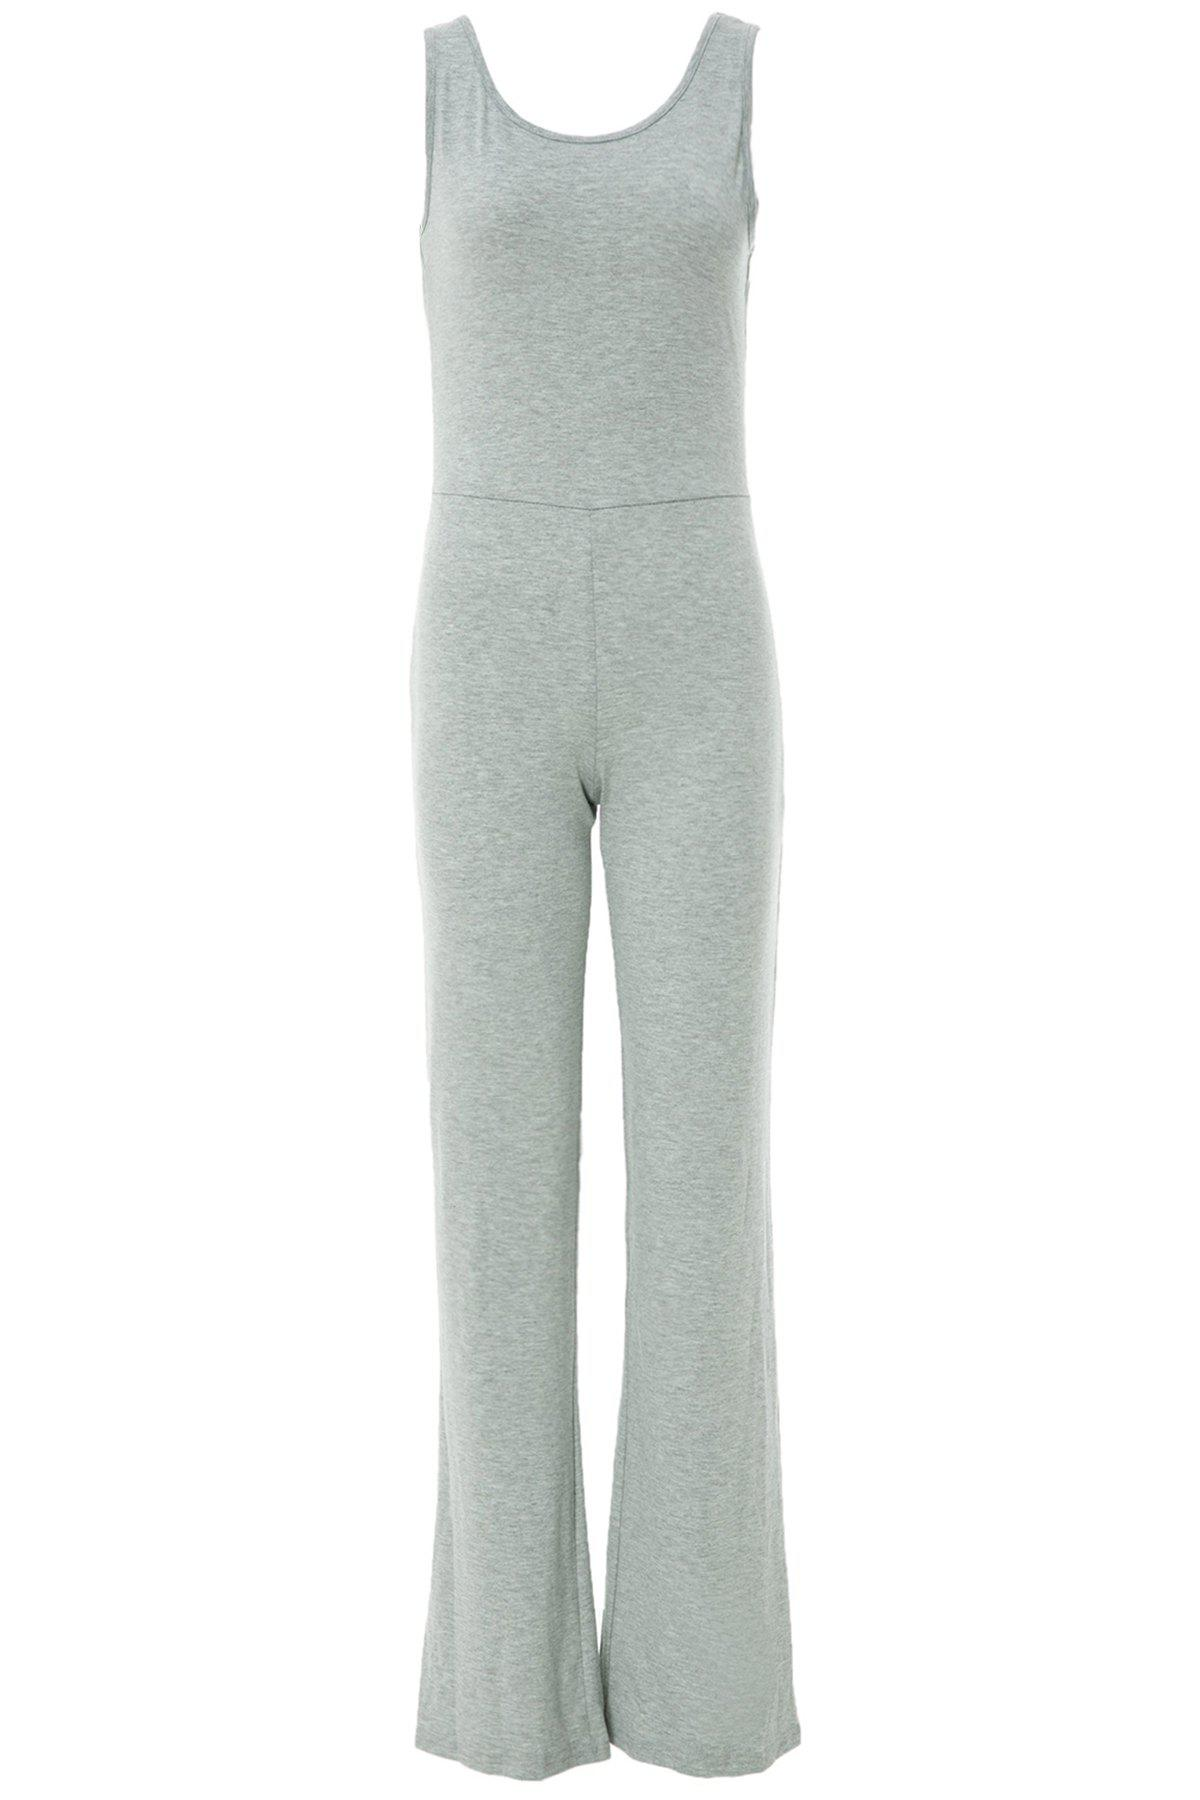 Sexy Scoop Neck Solid Color Backless Sleeveless Women's Jumpsuits - GRAY L